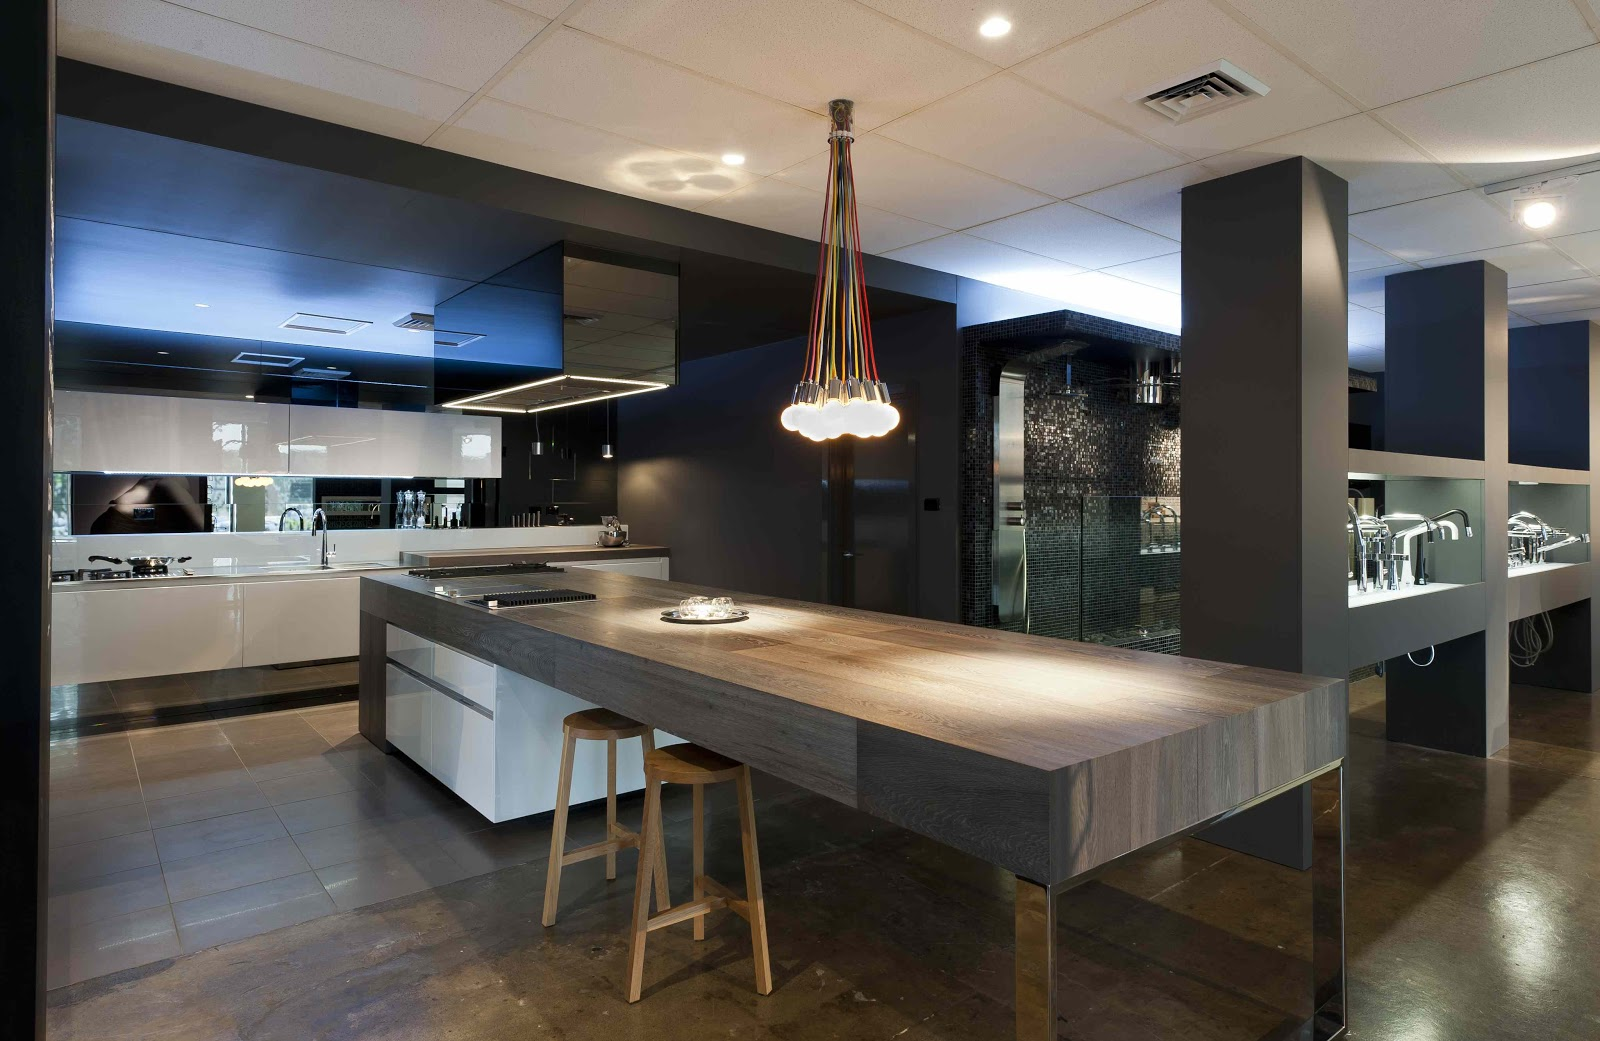 Minosa the cooks kitchen in south melbourne by minosa for Kitchen designs australia